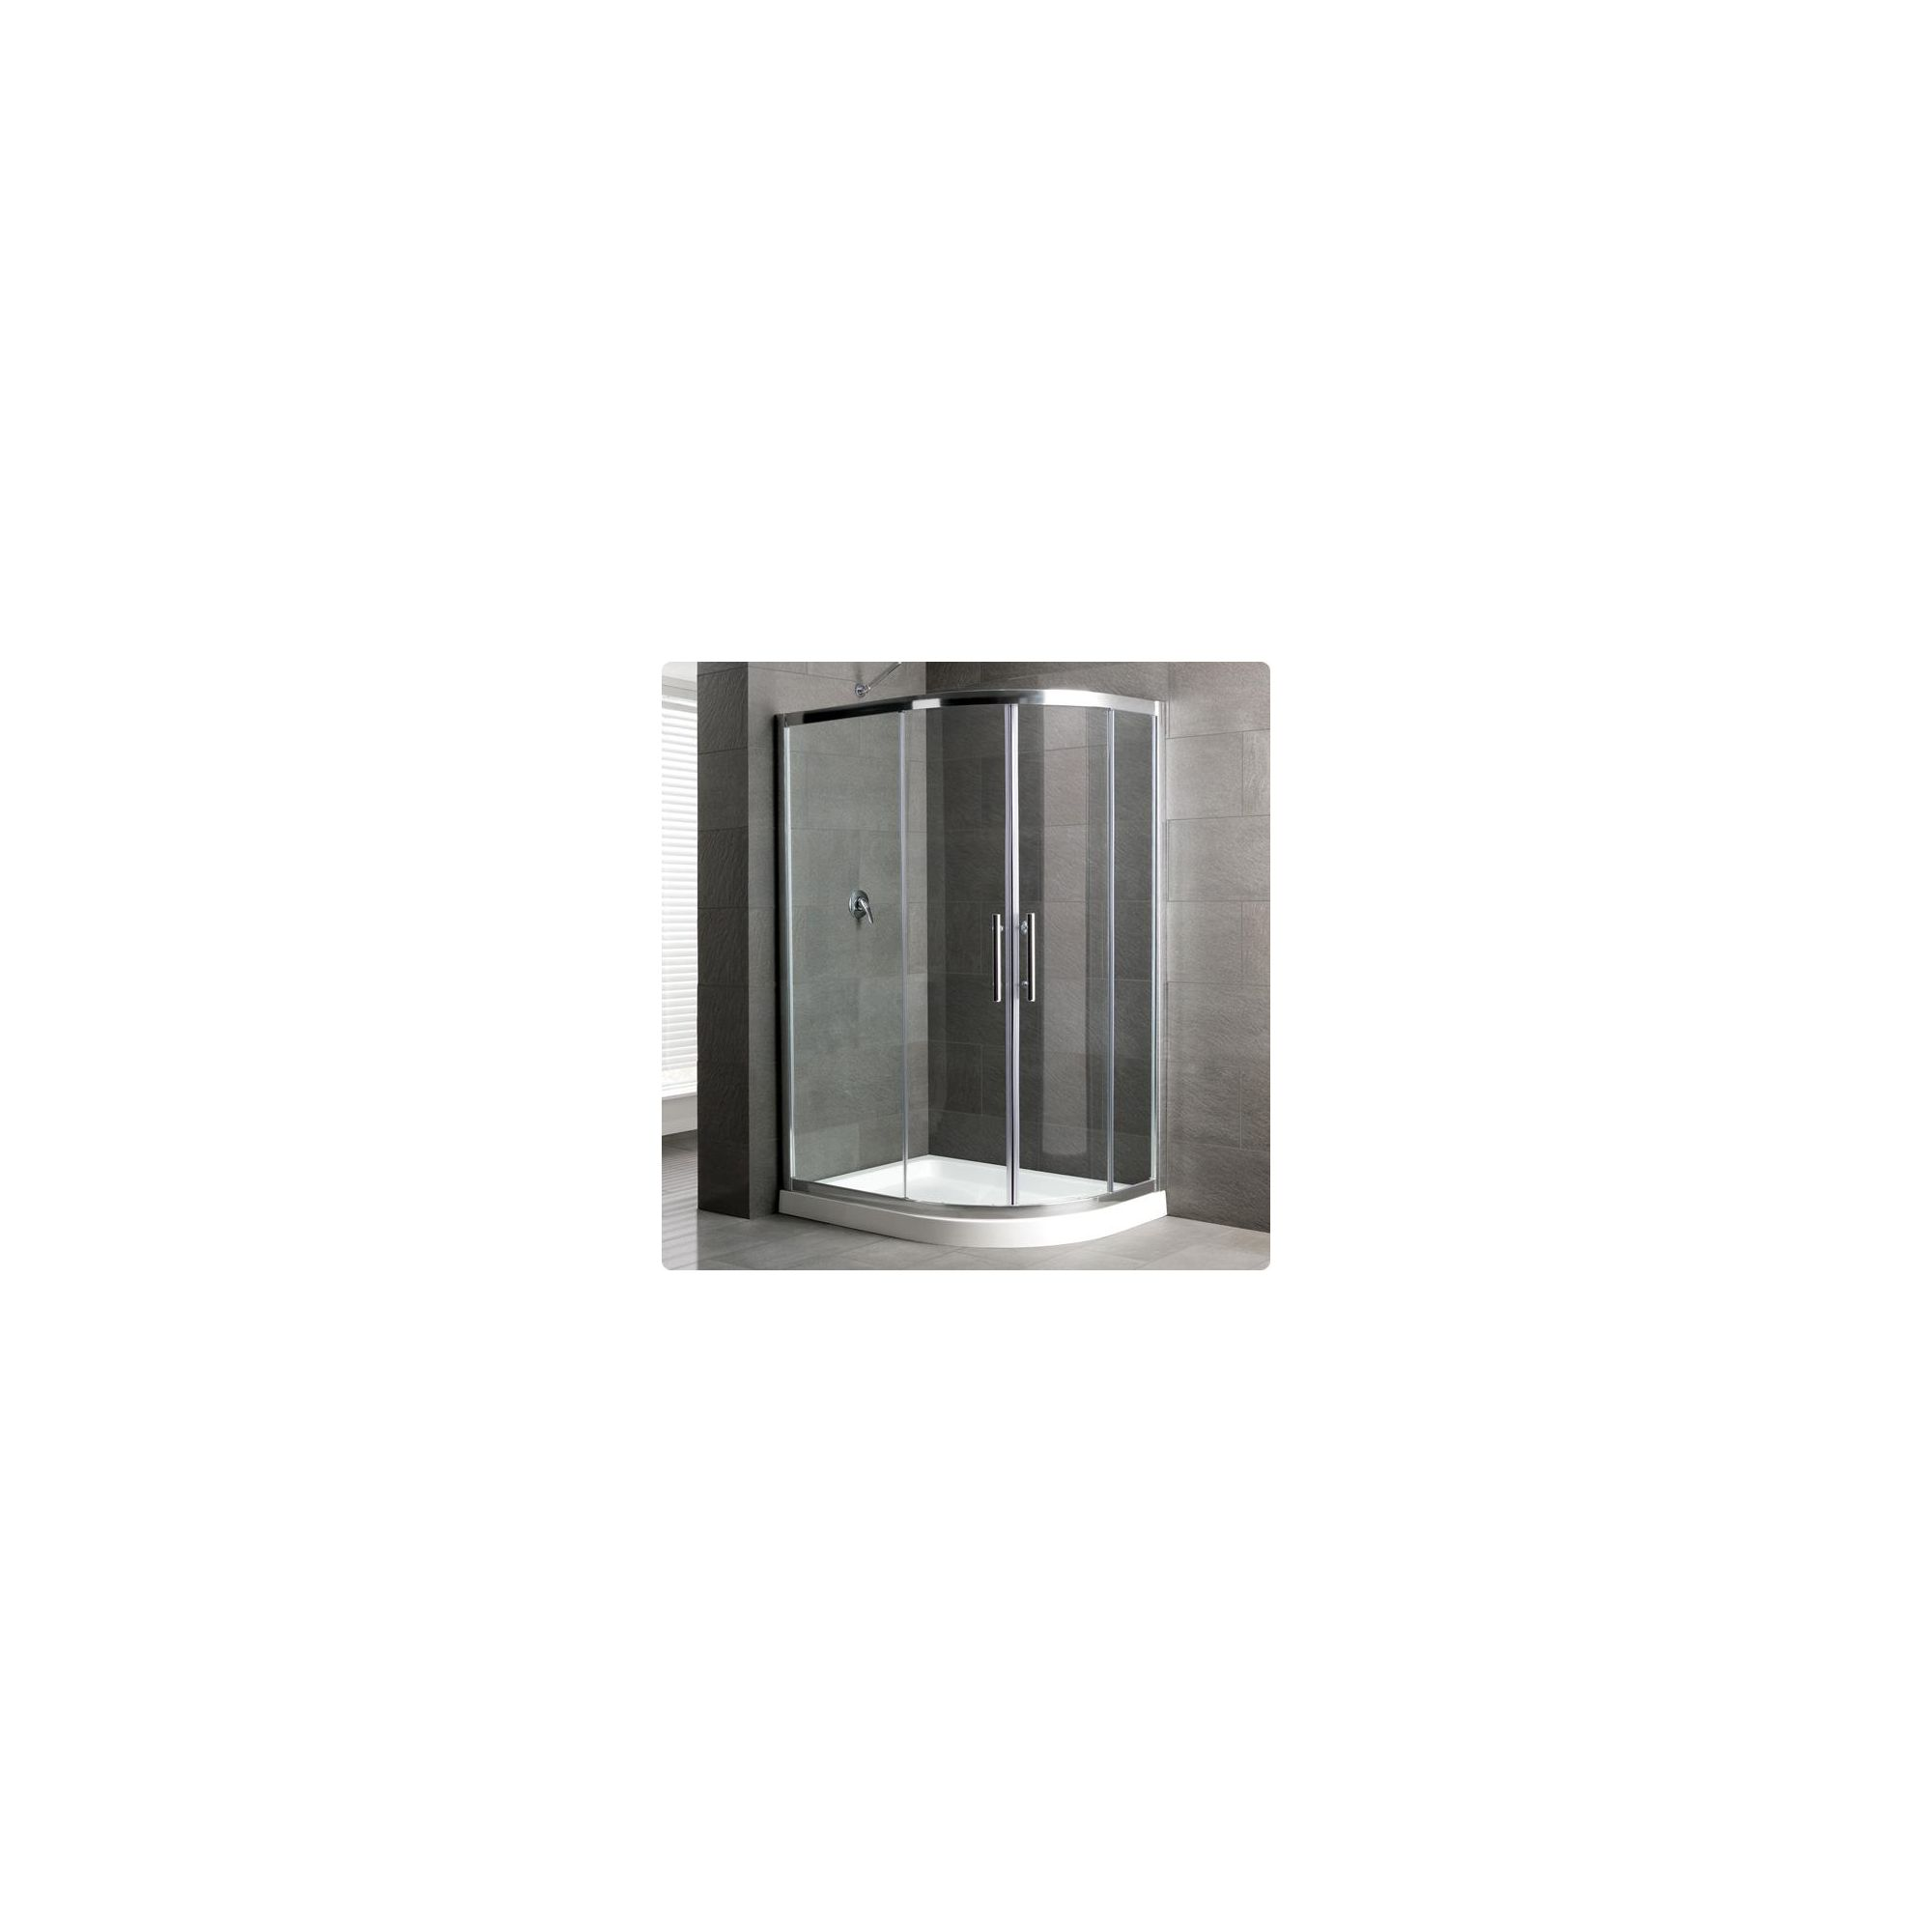 Duchy Select Silver 2 Door Offset Quadrant Shower Enclosure 1000mm x 800mm, Standard Tray, 6mm Glass at Tesco Direct